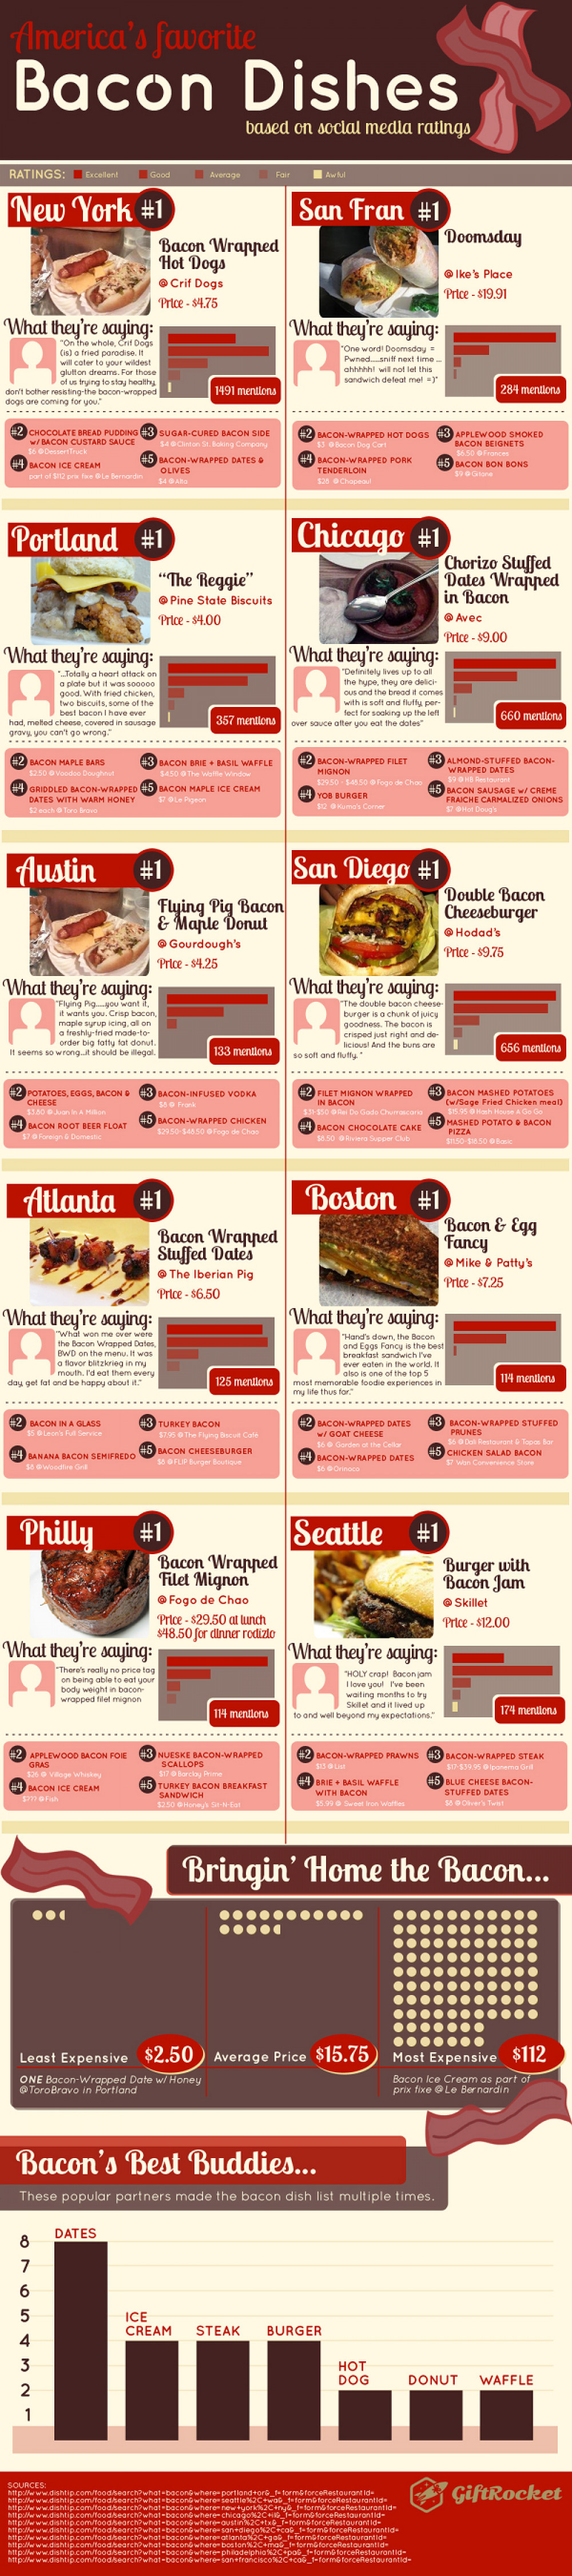 The Best Bacon Dishes in the USA Based on Social Media Ratings